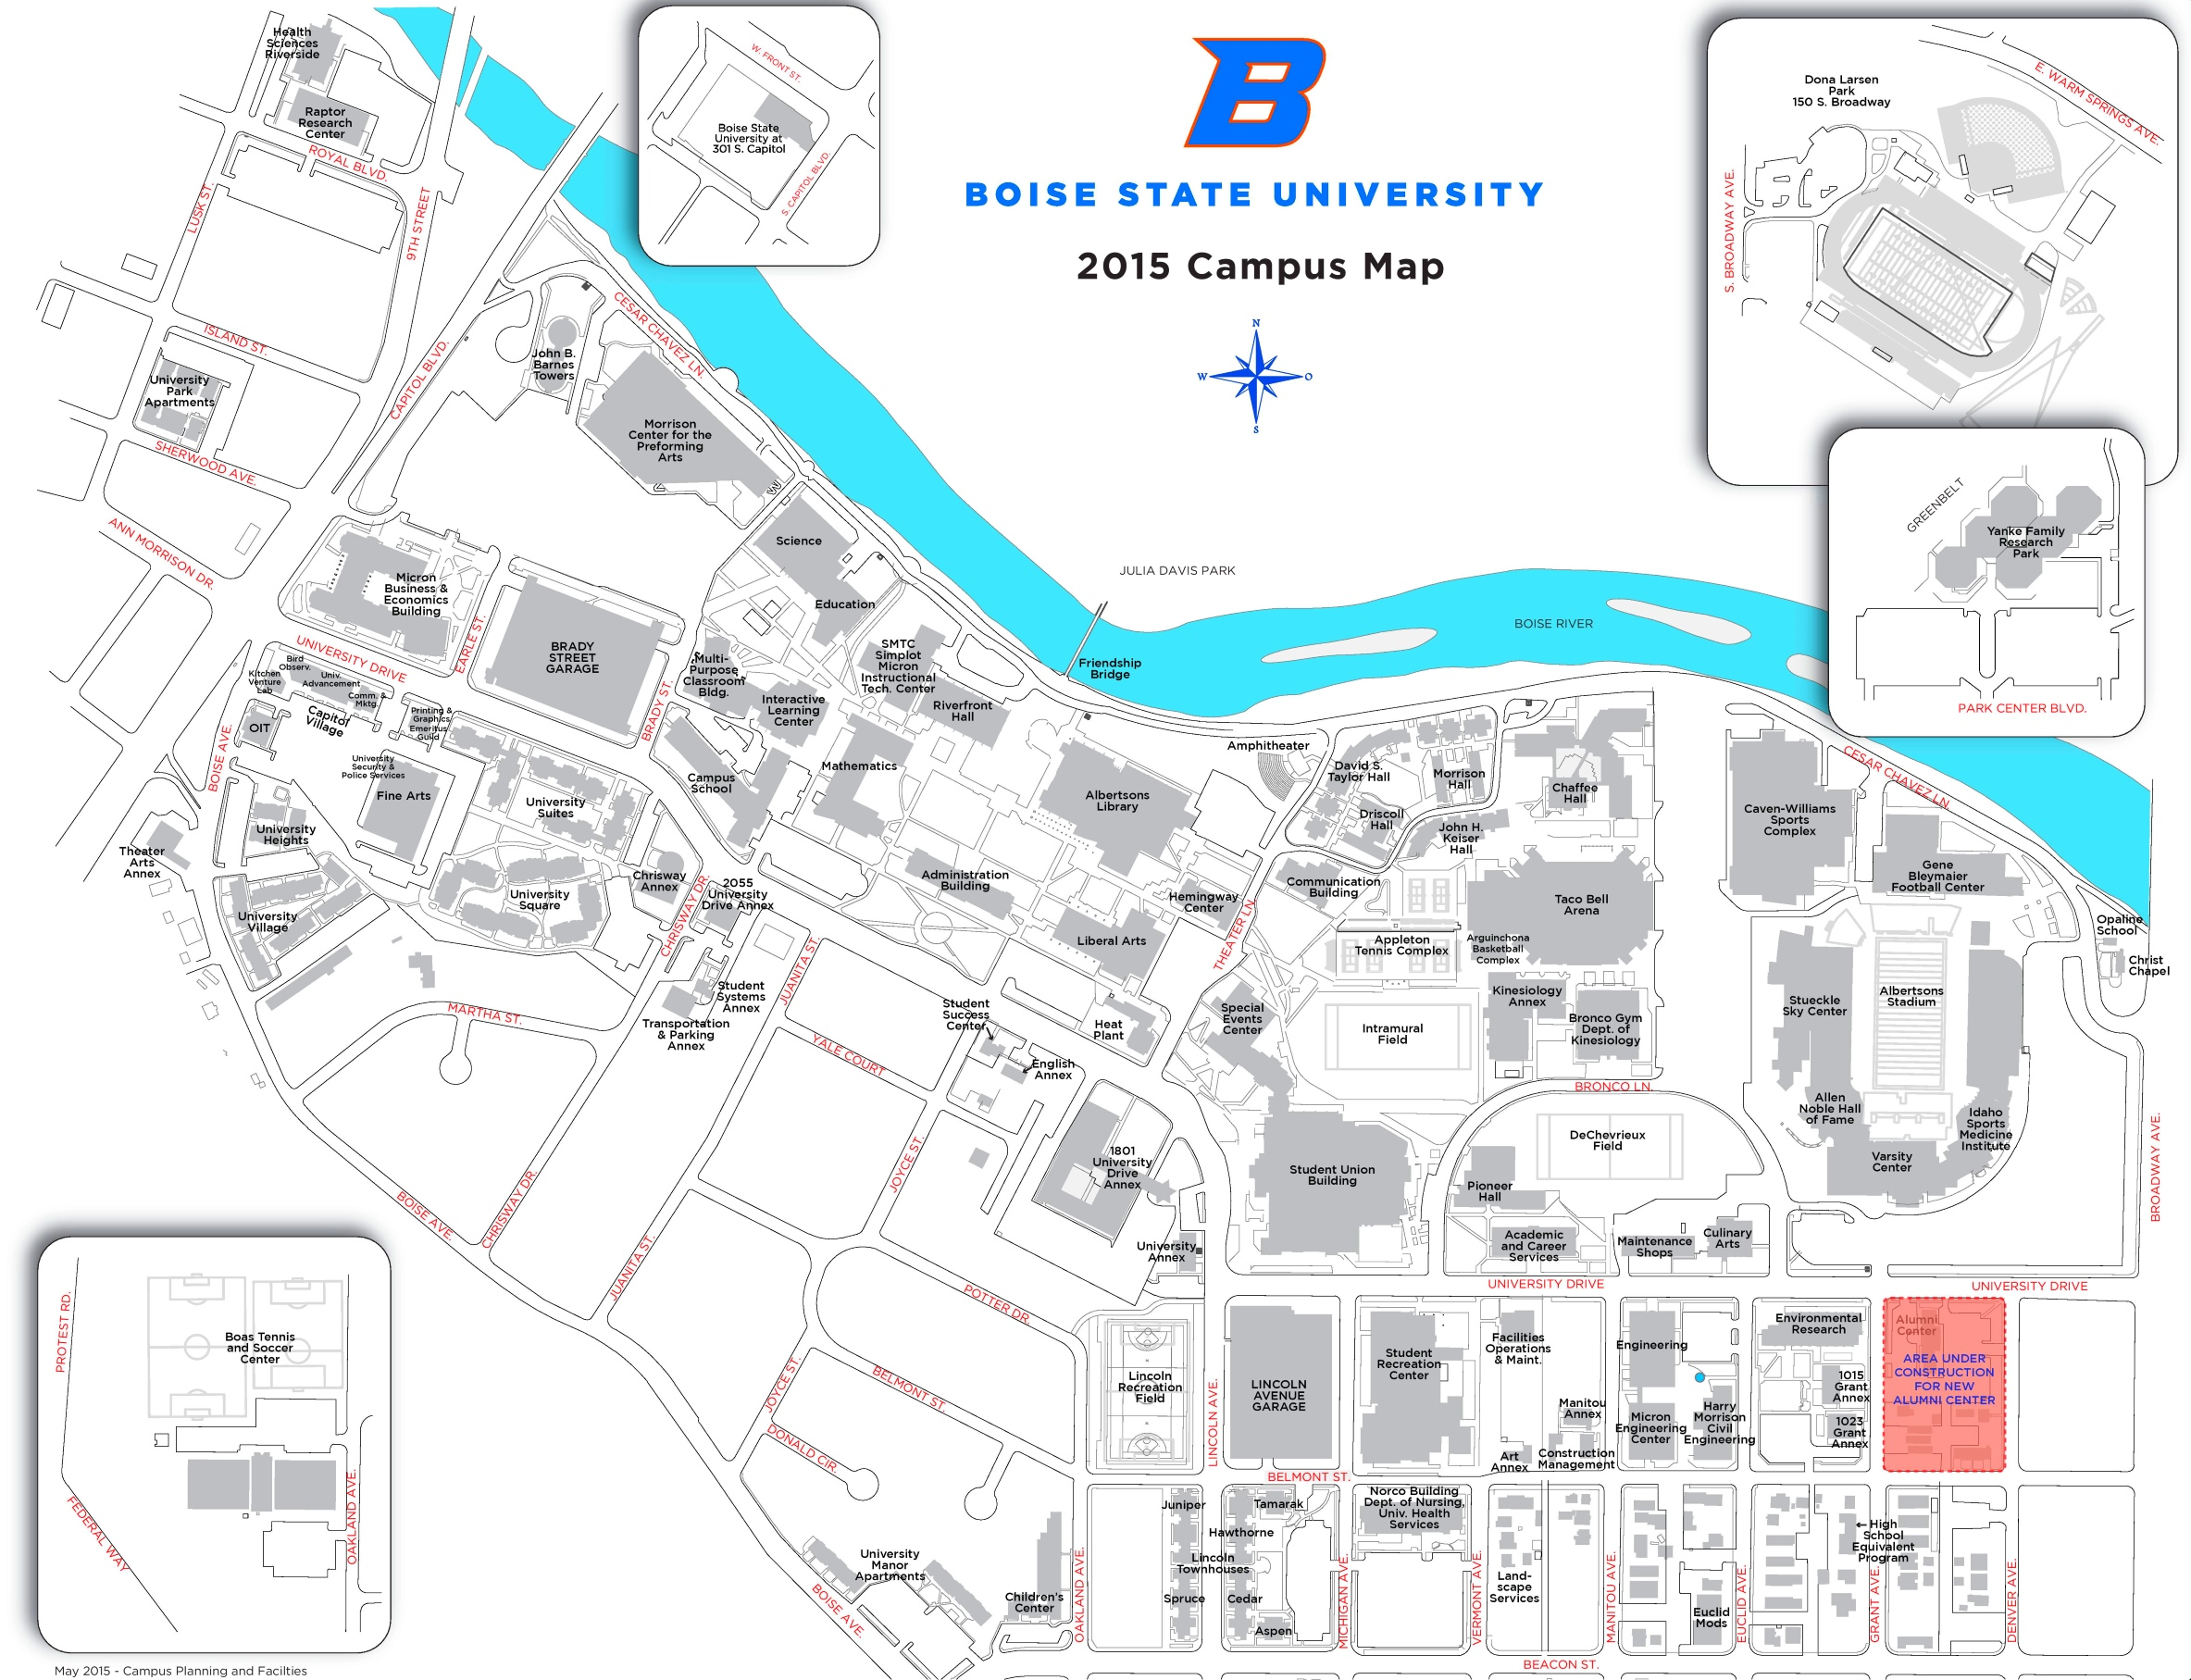 Boise State Campus Map Boise State University Campus map